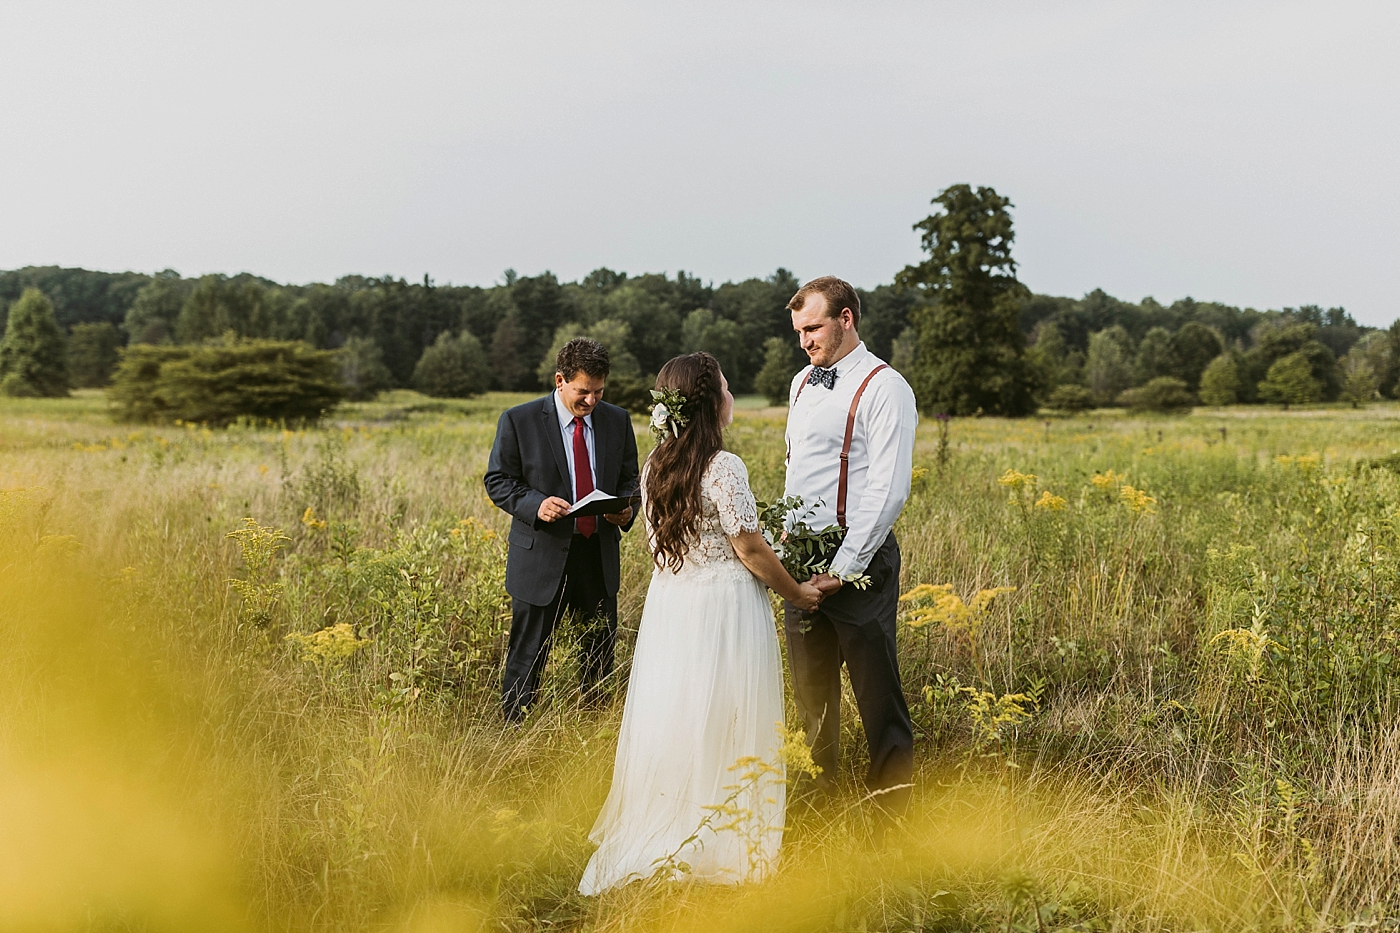 Meadow-Elopement-Ashley+Ben_MJPHOTO2018-93.jpg